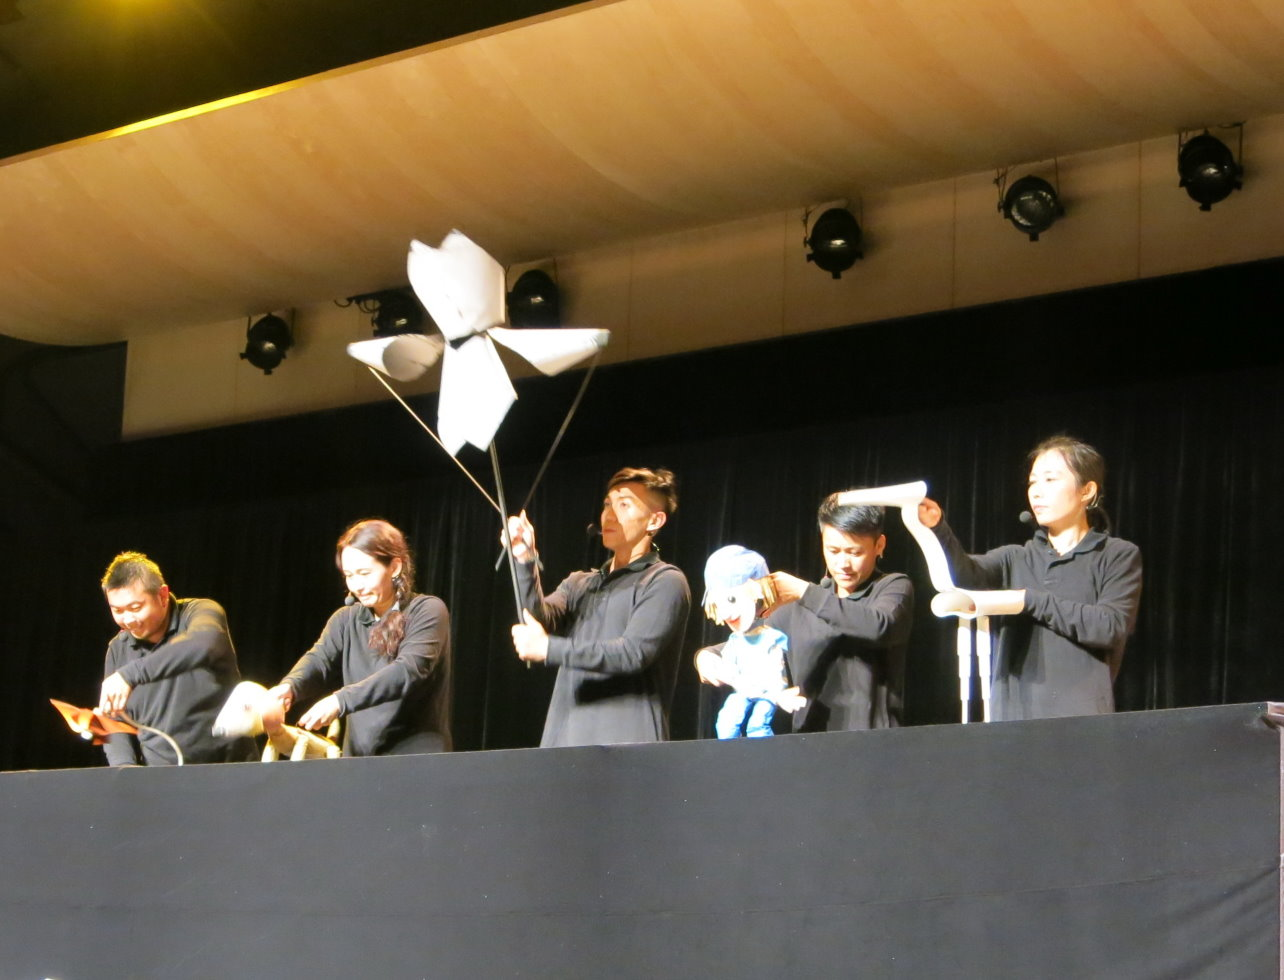 Members of the Puppet Beings Theatre perform a play